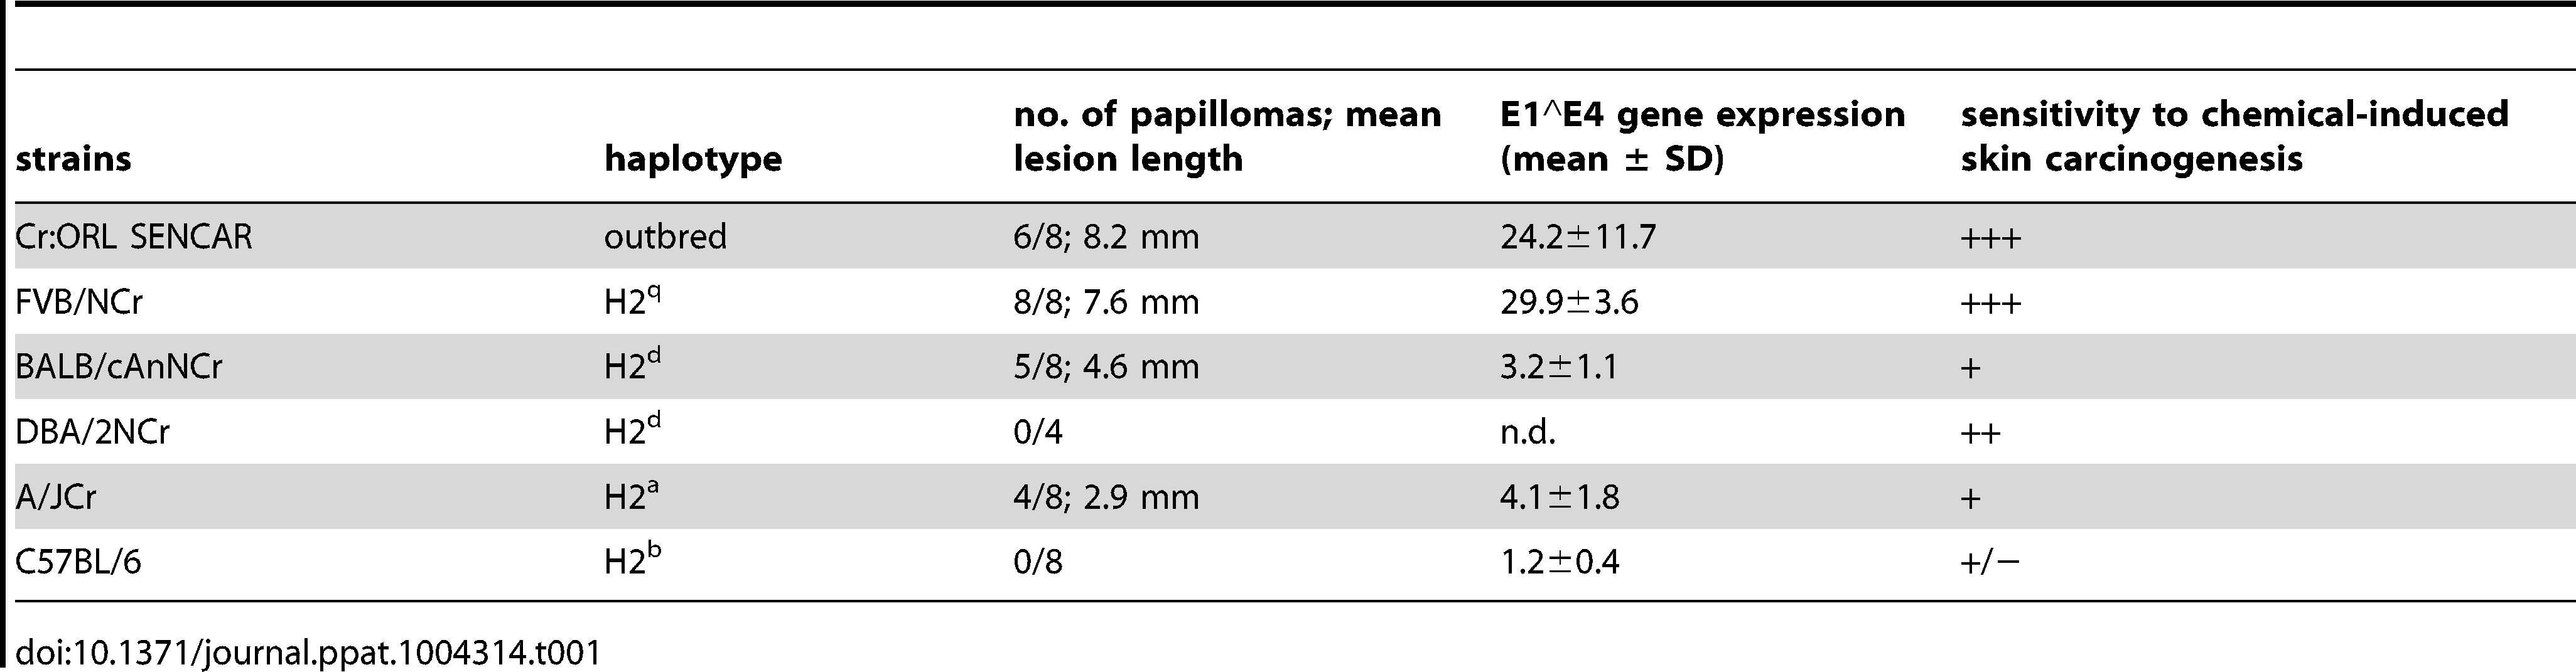 Summary of papilloma development under cyclosporin A treatment in different murine strains.